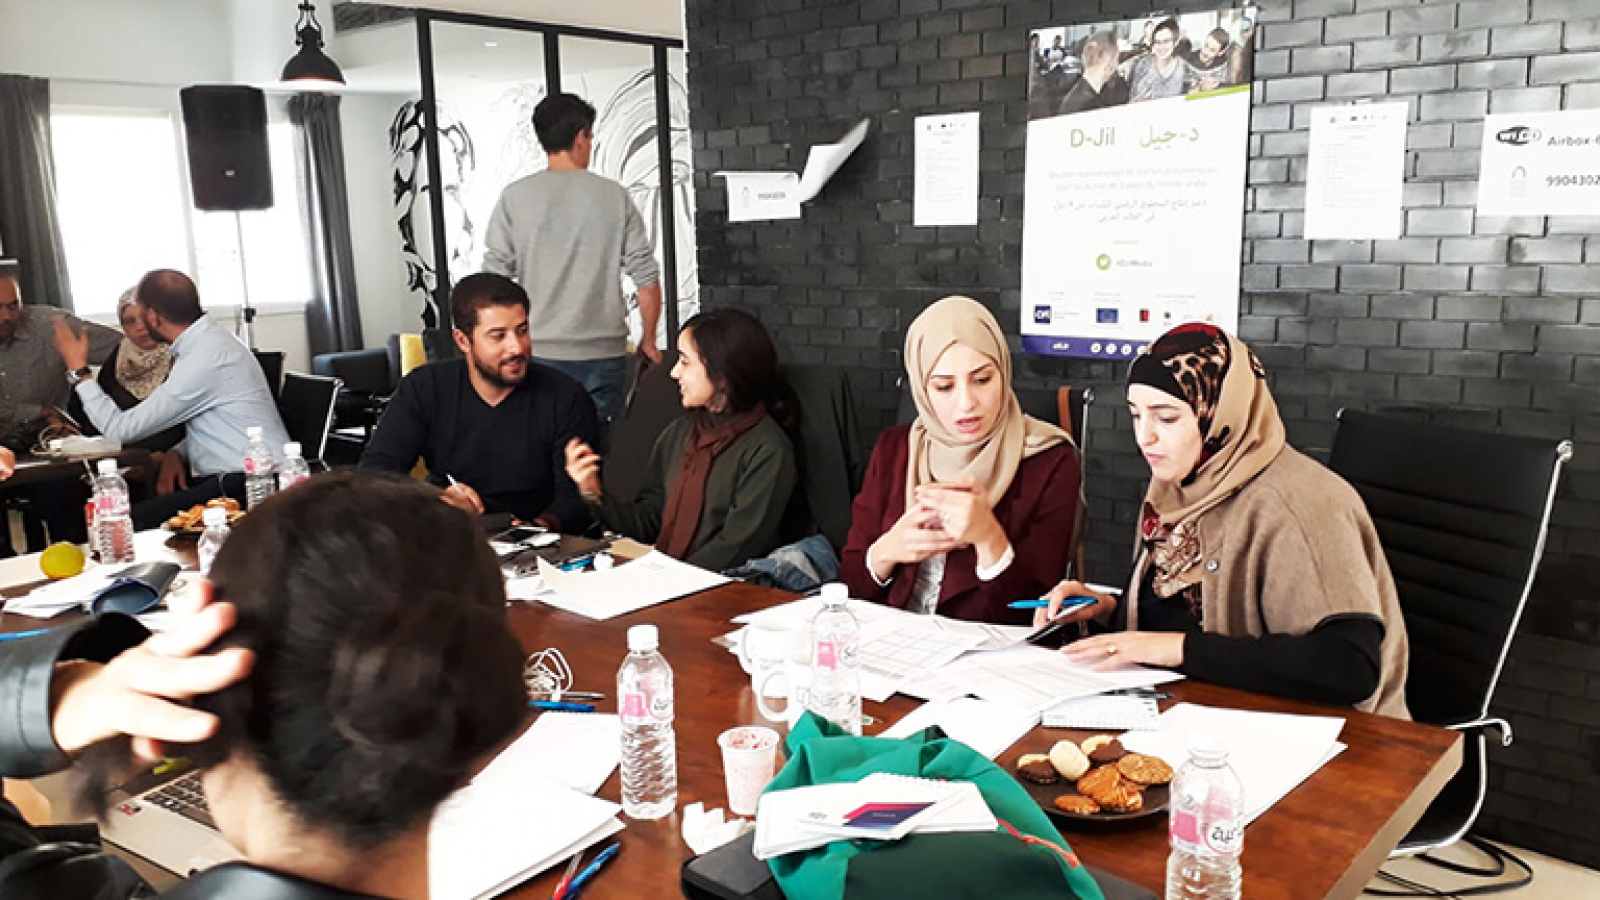 First incubator session for EU-funded D-Jil winners